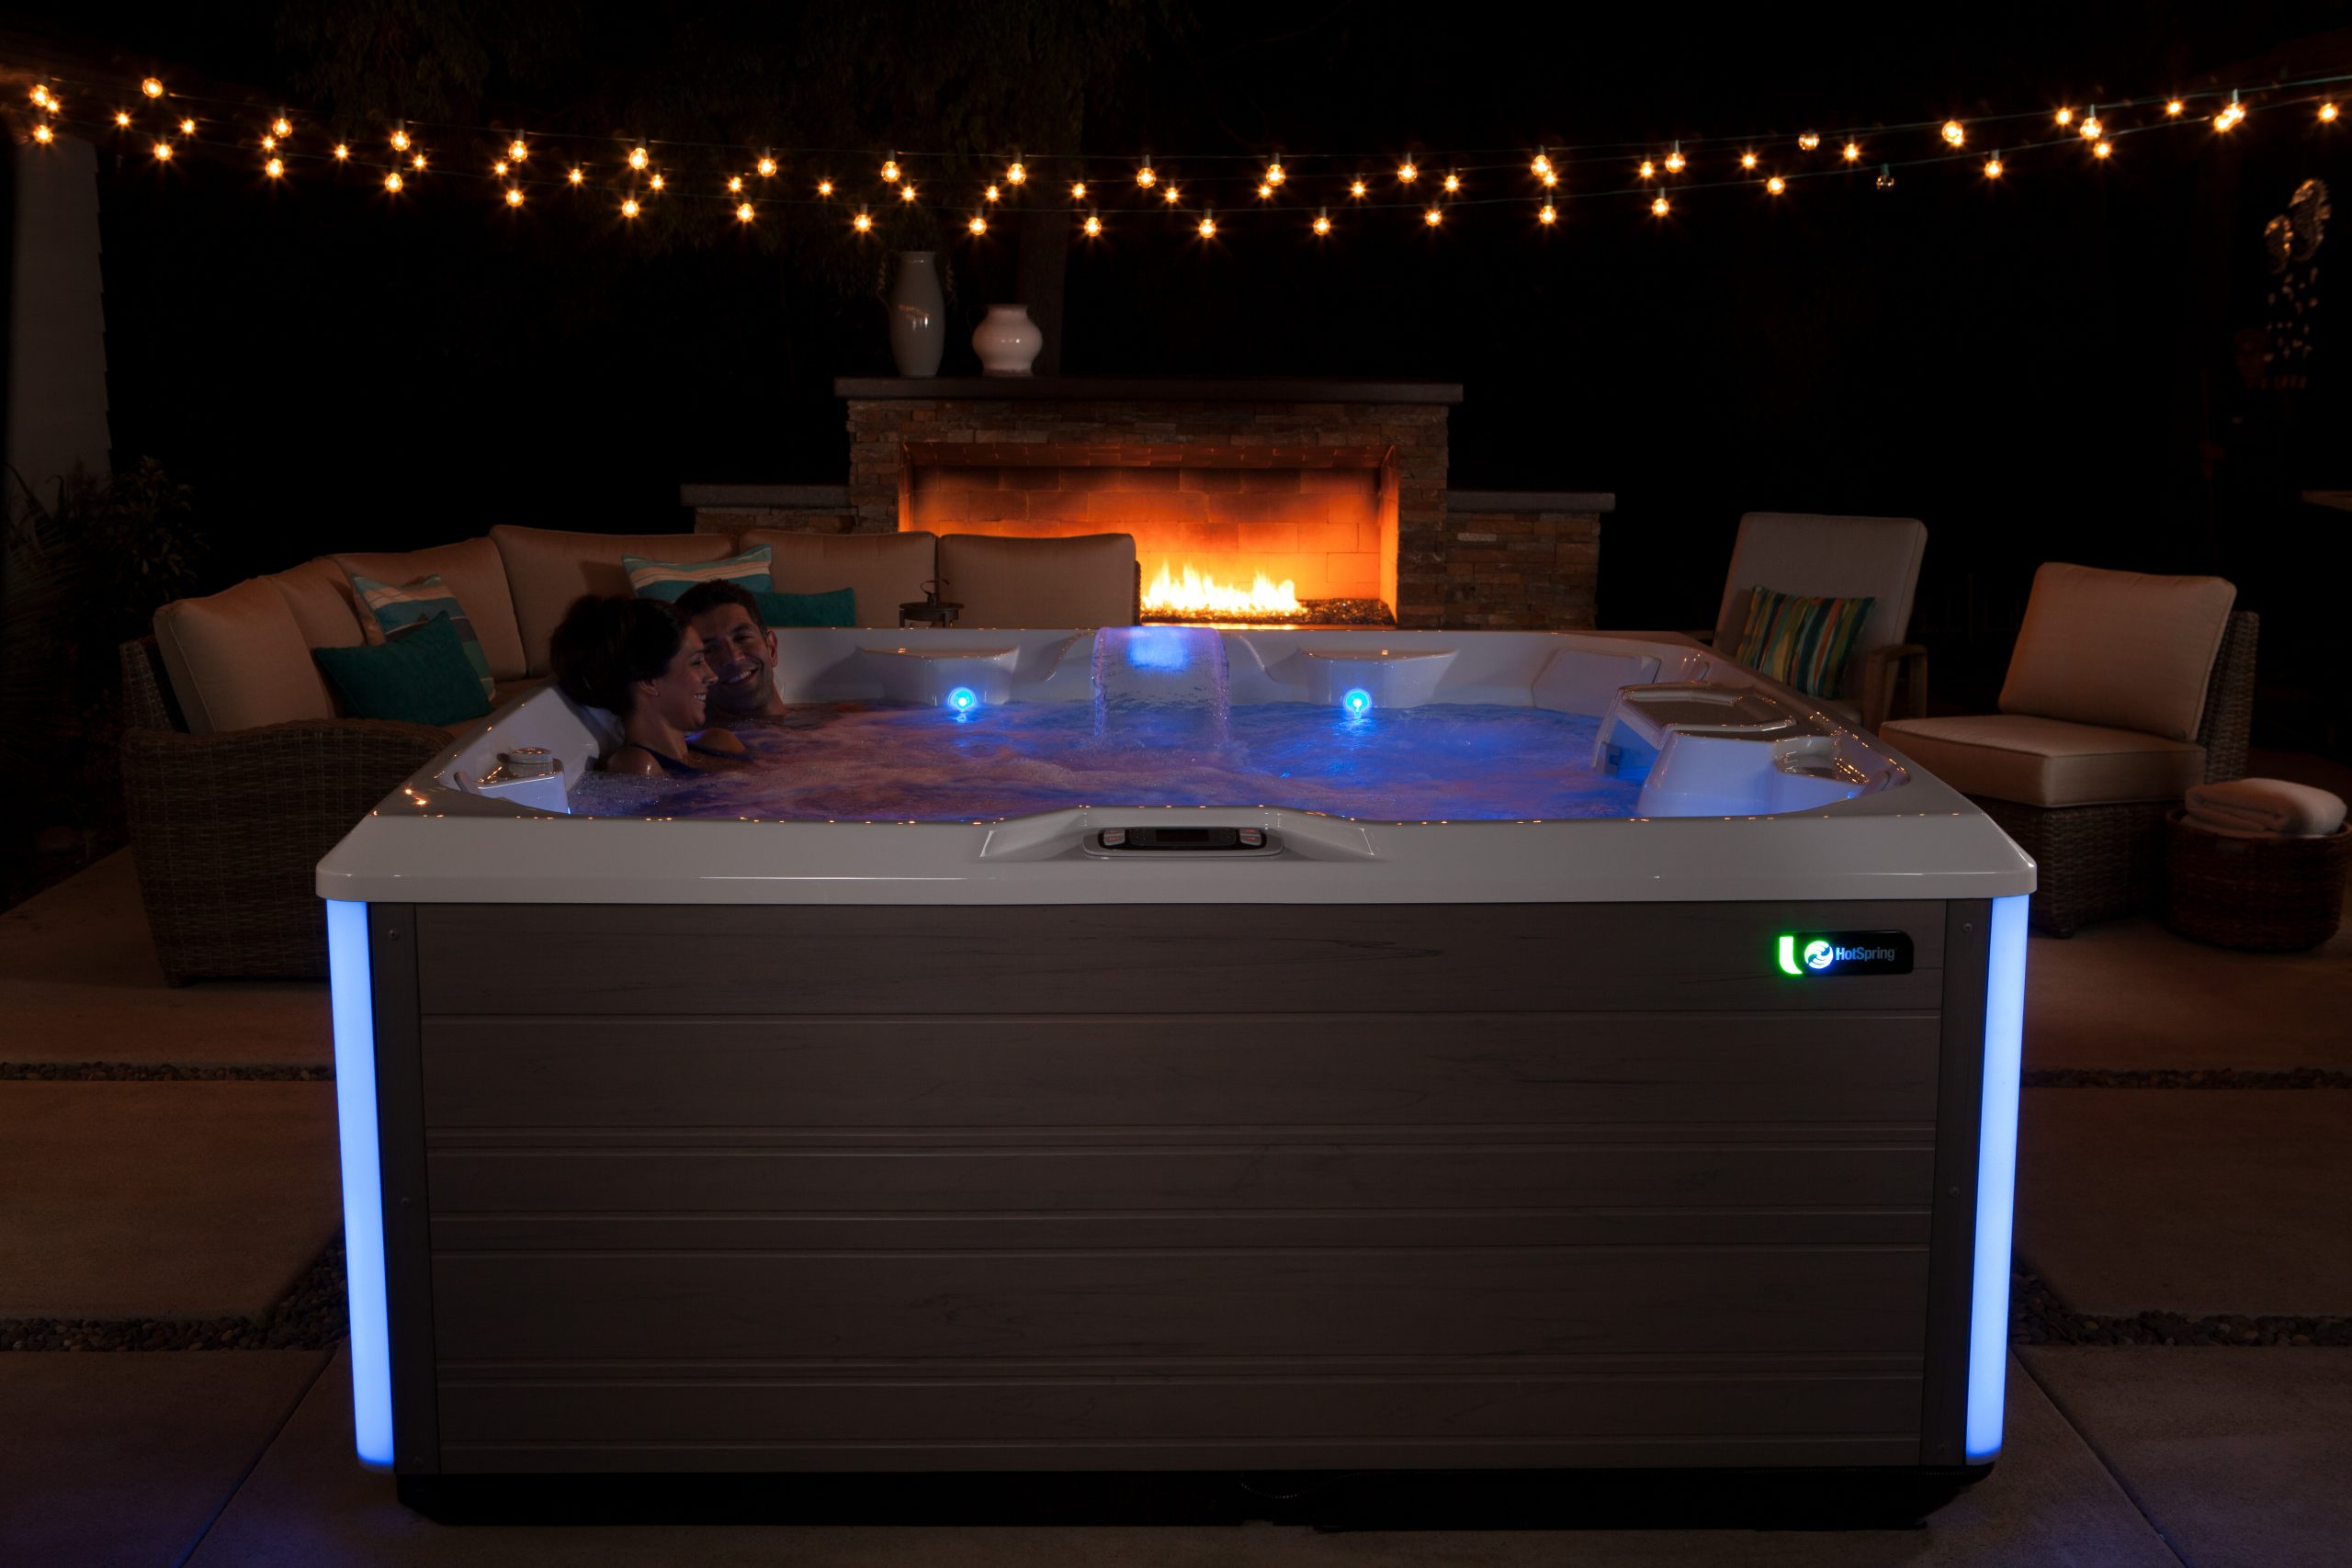 How COVID has Affected the Hot Tub Industry and Why it's Worth the Wait!